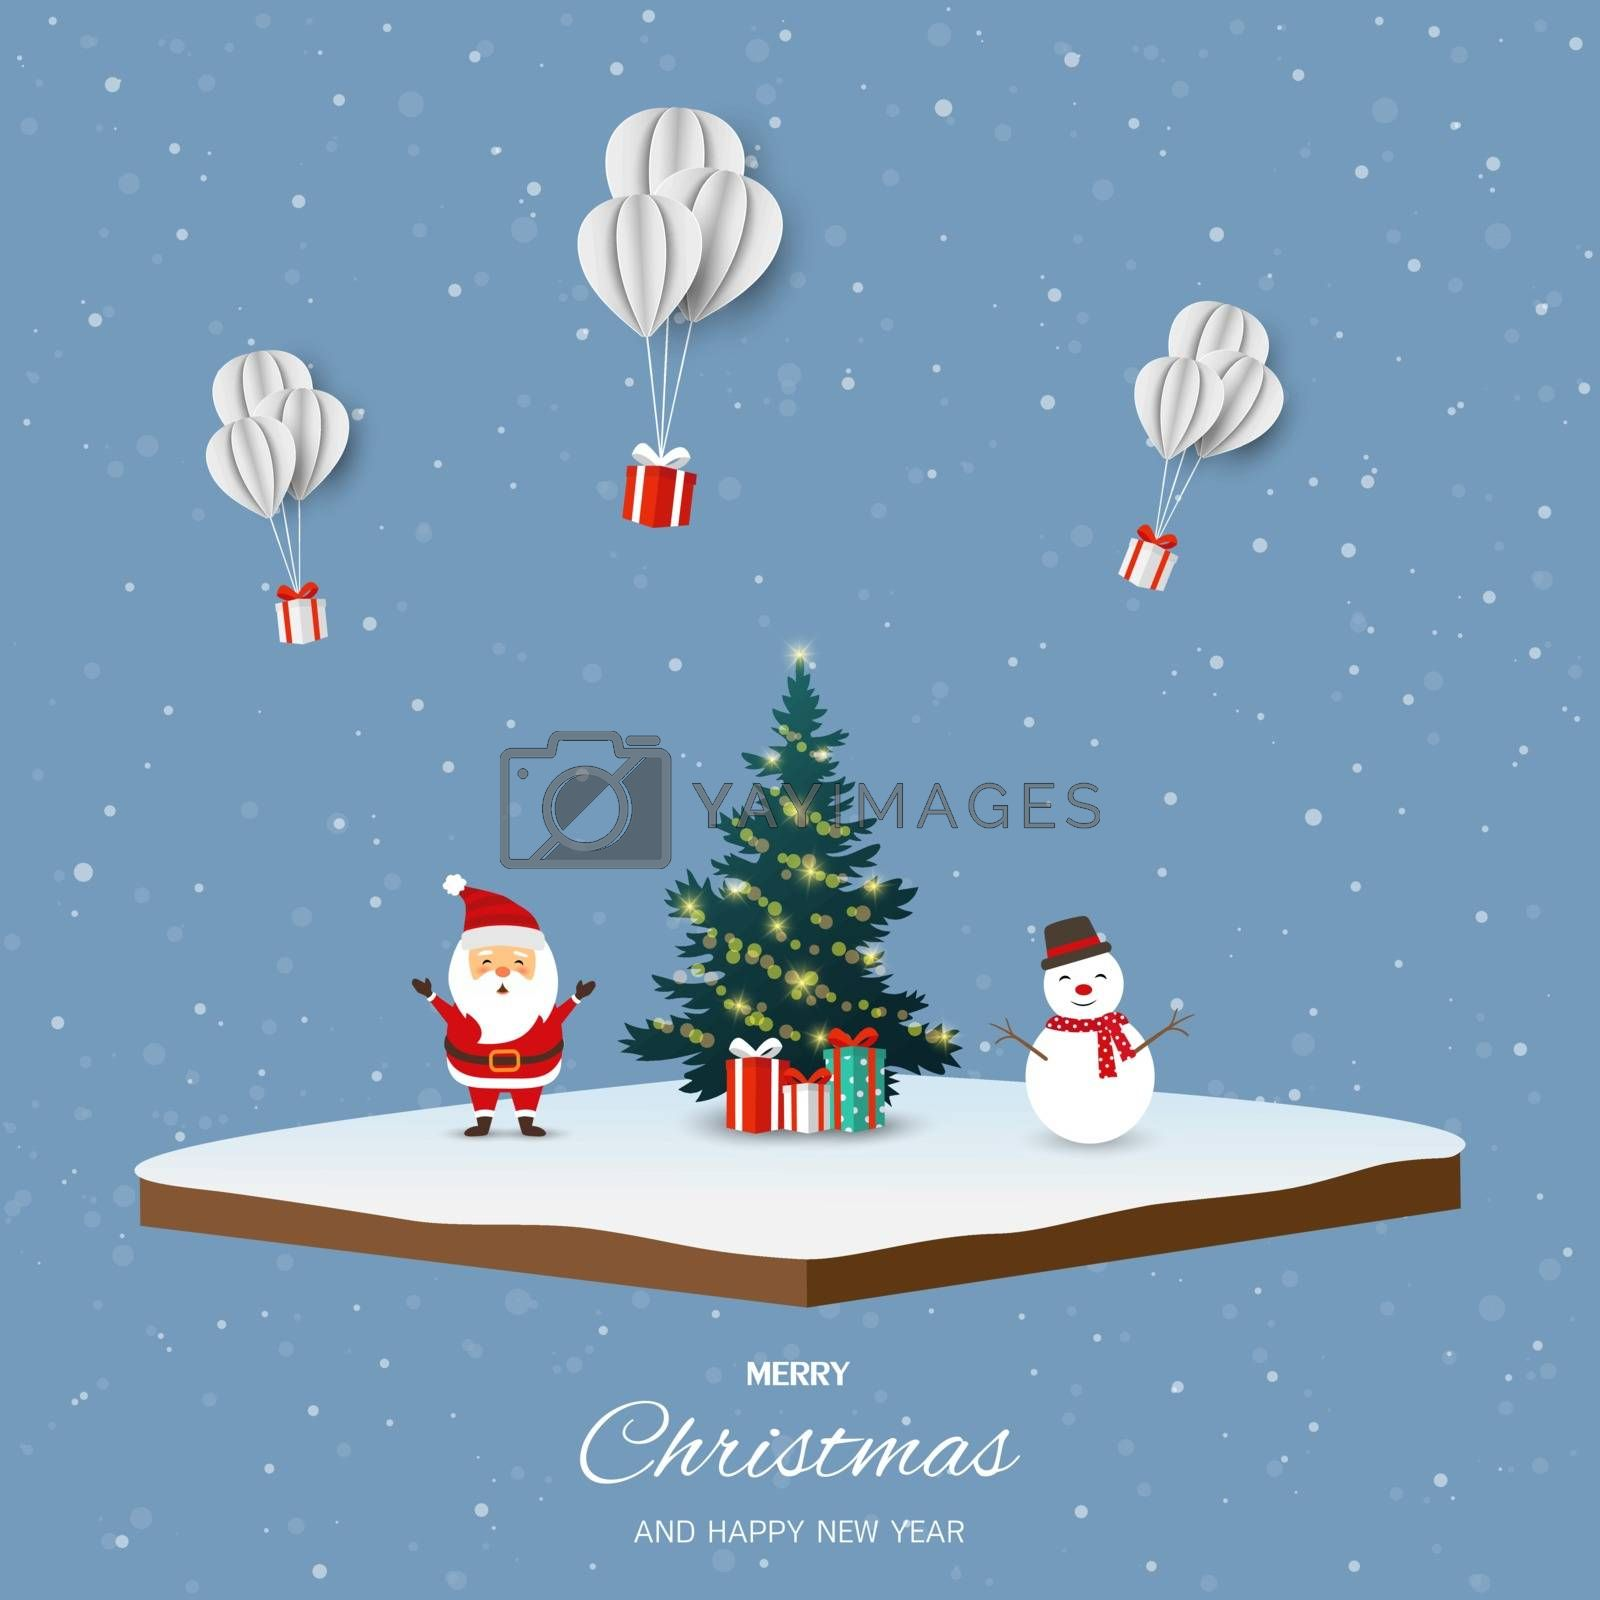 Merry Christmas and happy new year with Santa Claus,snowman and gift boxes on isometric landscape background by PIMPAKA